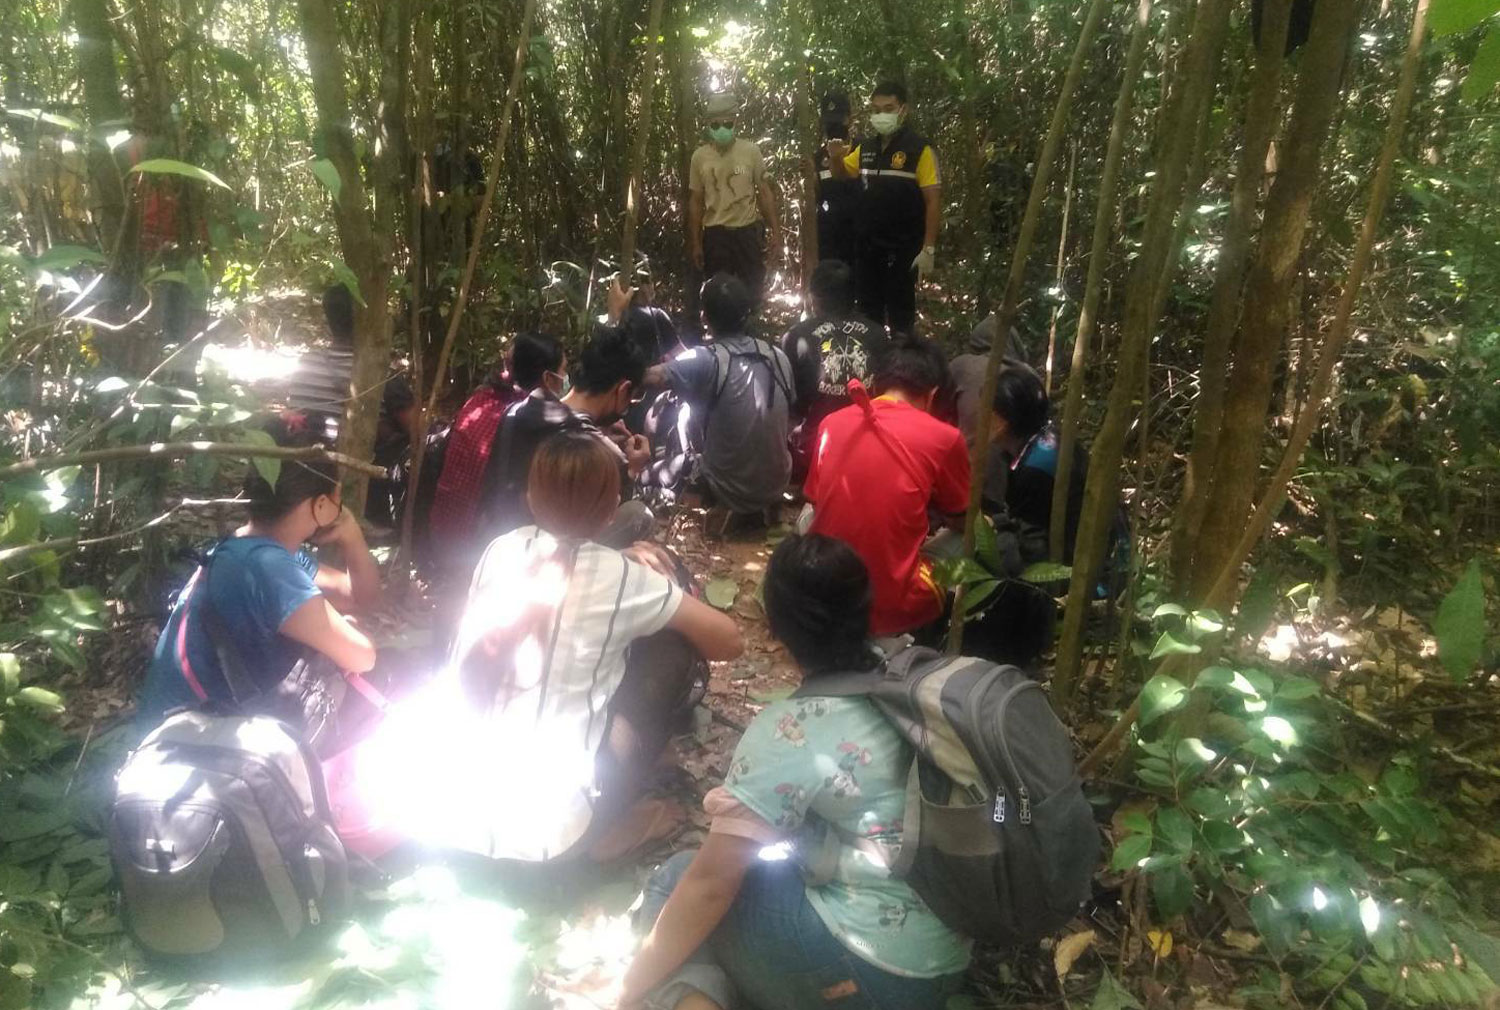 A group of 12 Myanmar nationals, including a guide, is found in a forested area in Songkhla's Bang Klam district on Thursday morning. (Photo: Assawin Pakkawan)